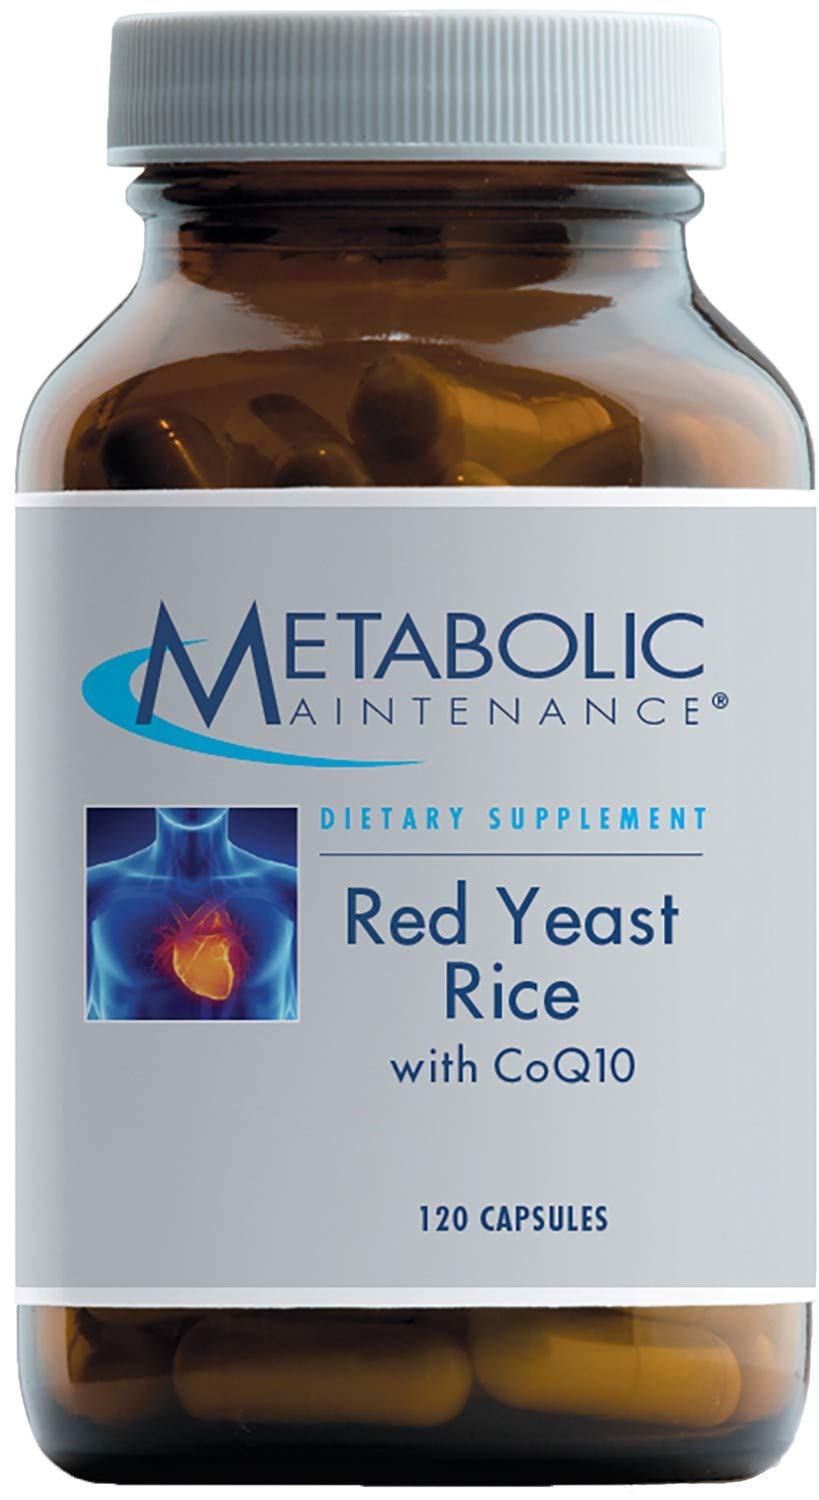 Metabolic Maintenance Red Yeast Rice with CoQ10-1200 mg Concentrate + 200 mg Coenzyme Q10 for Cardiovascular Support (120 Capsules)